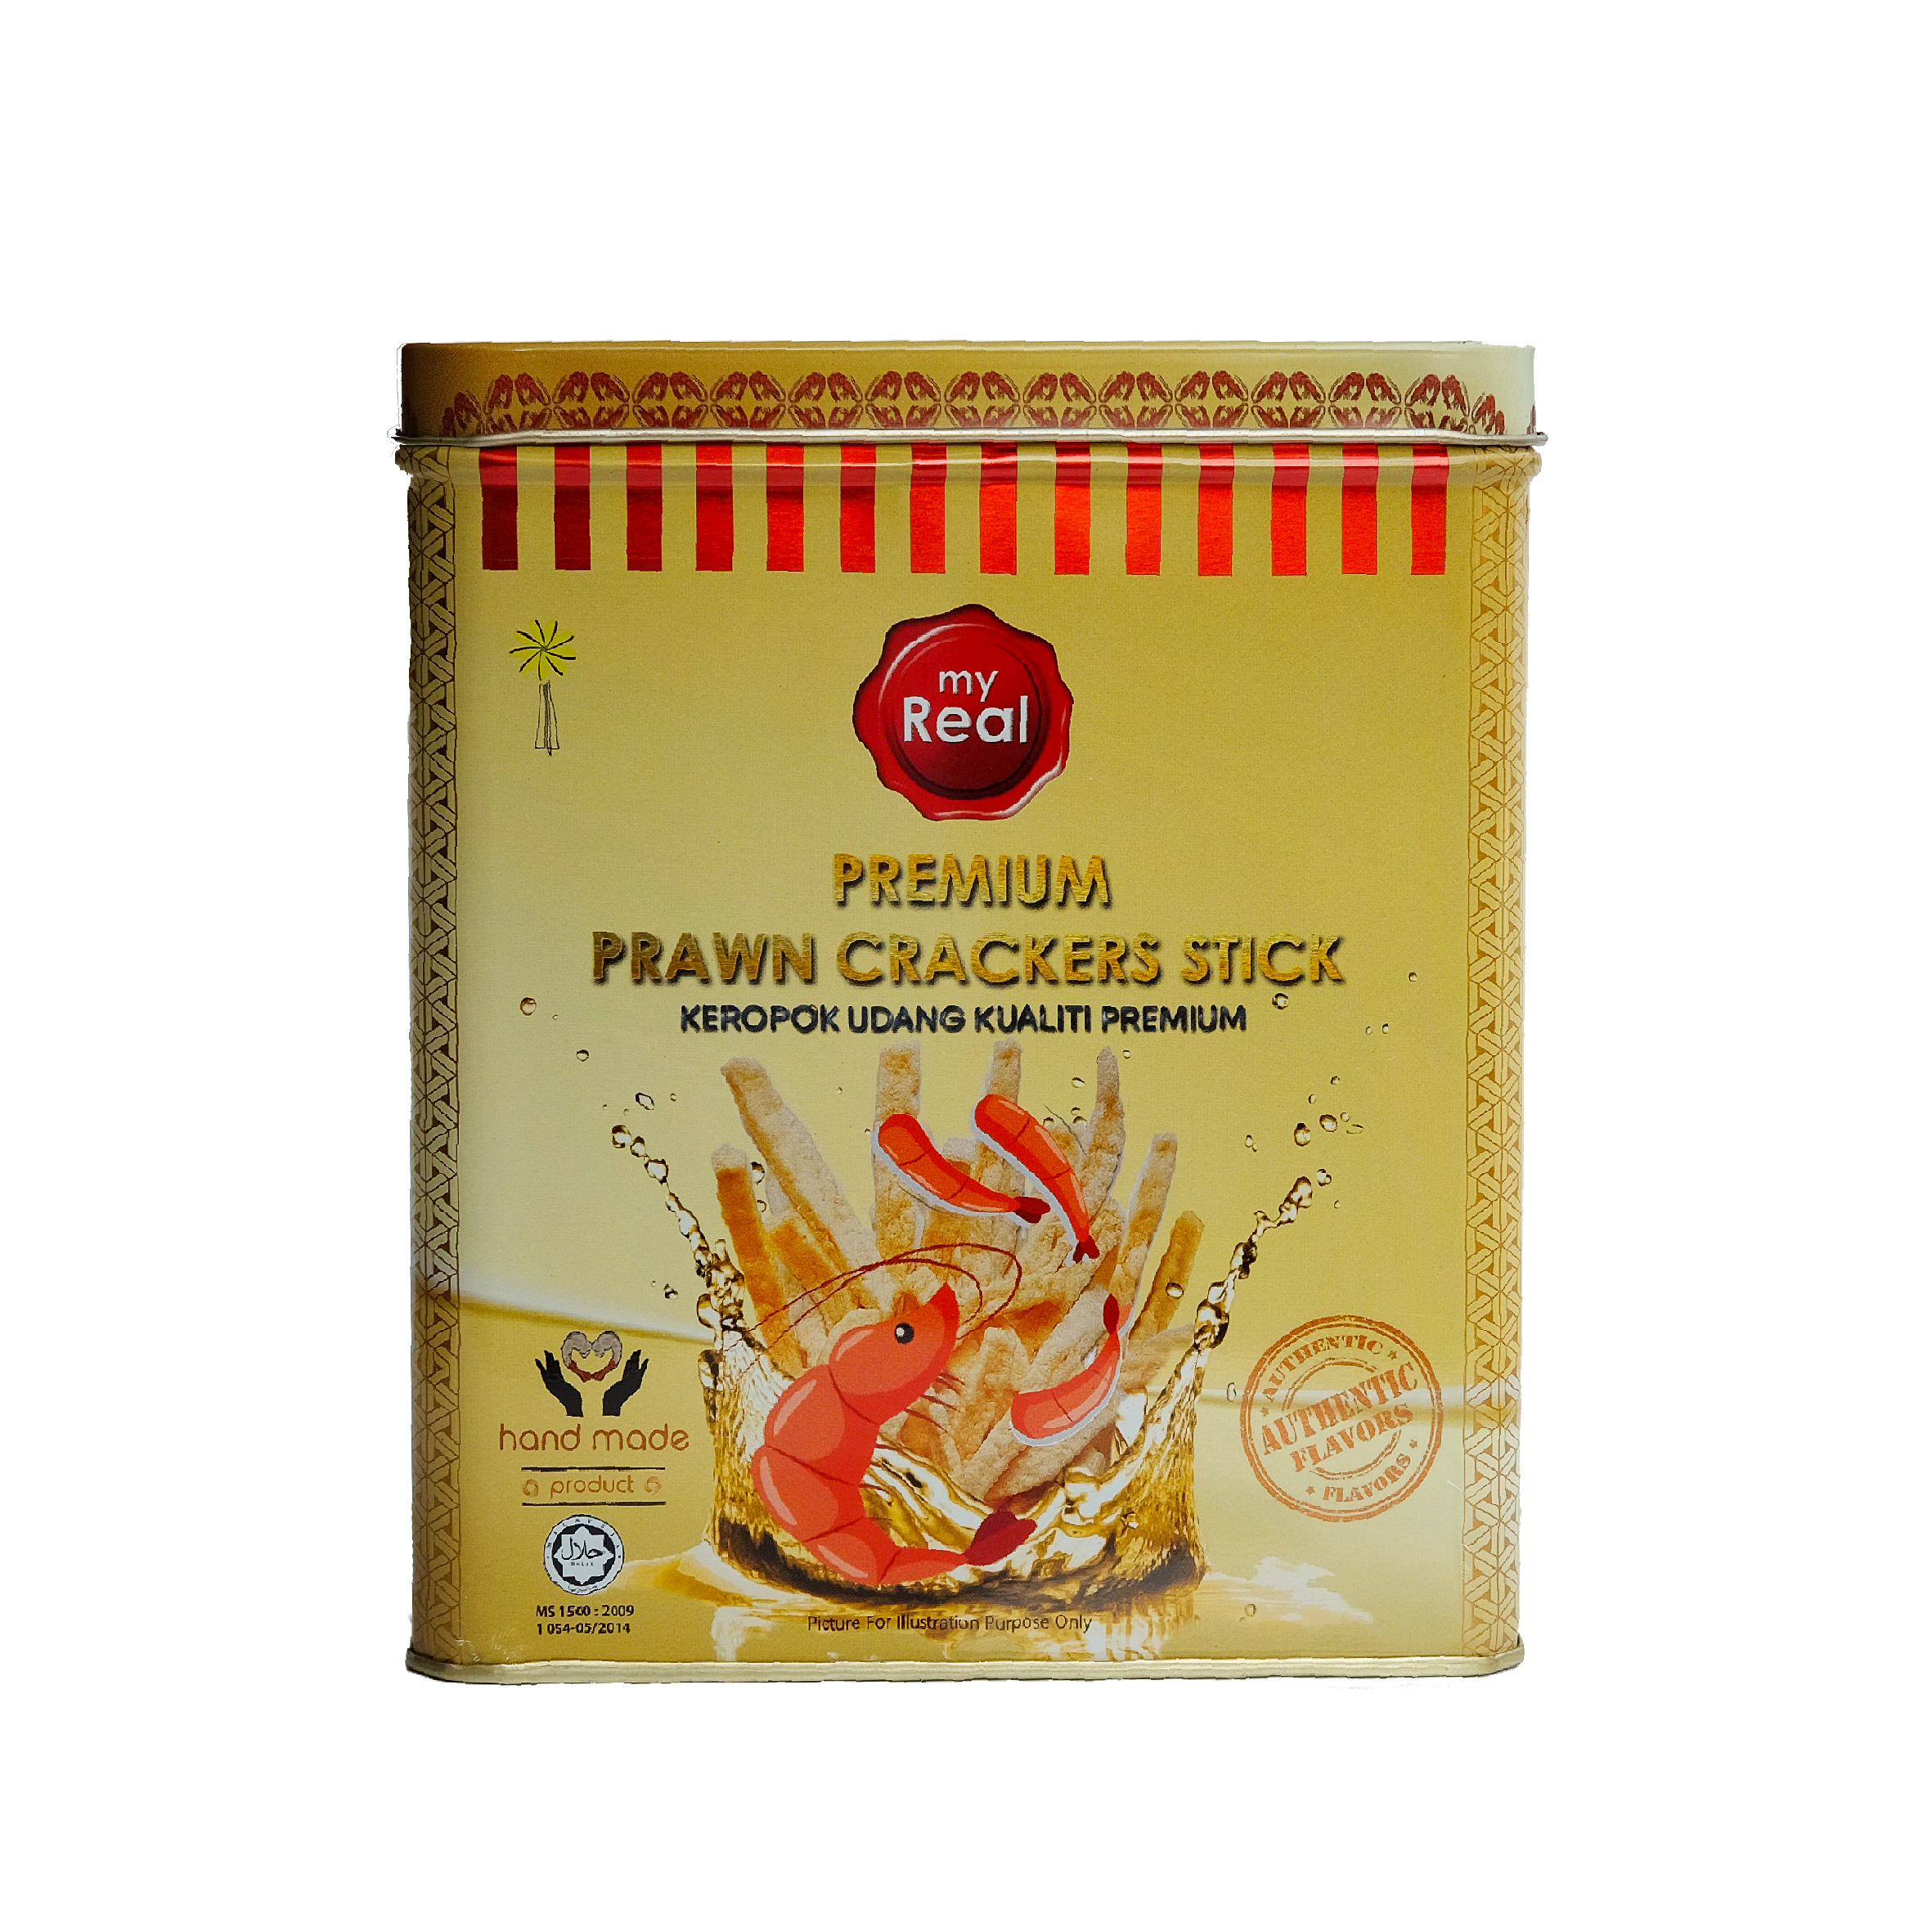 320g myReal Premium Prawn Crackers Stick